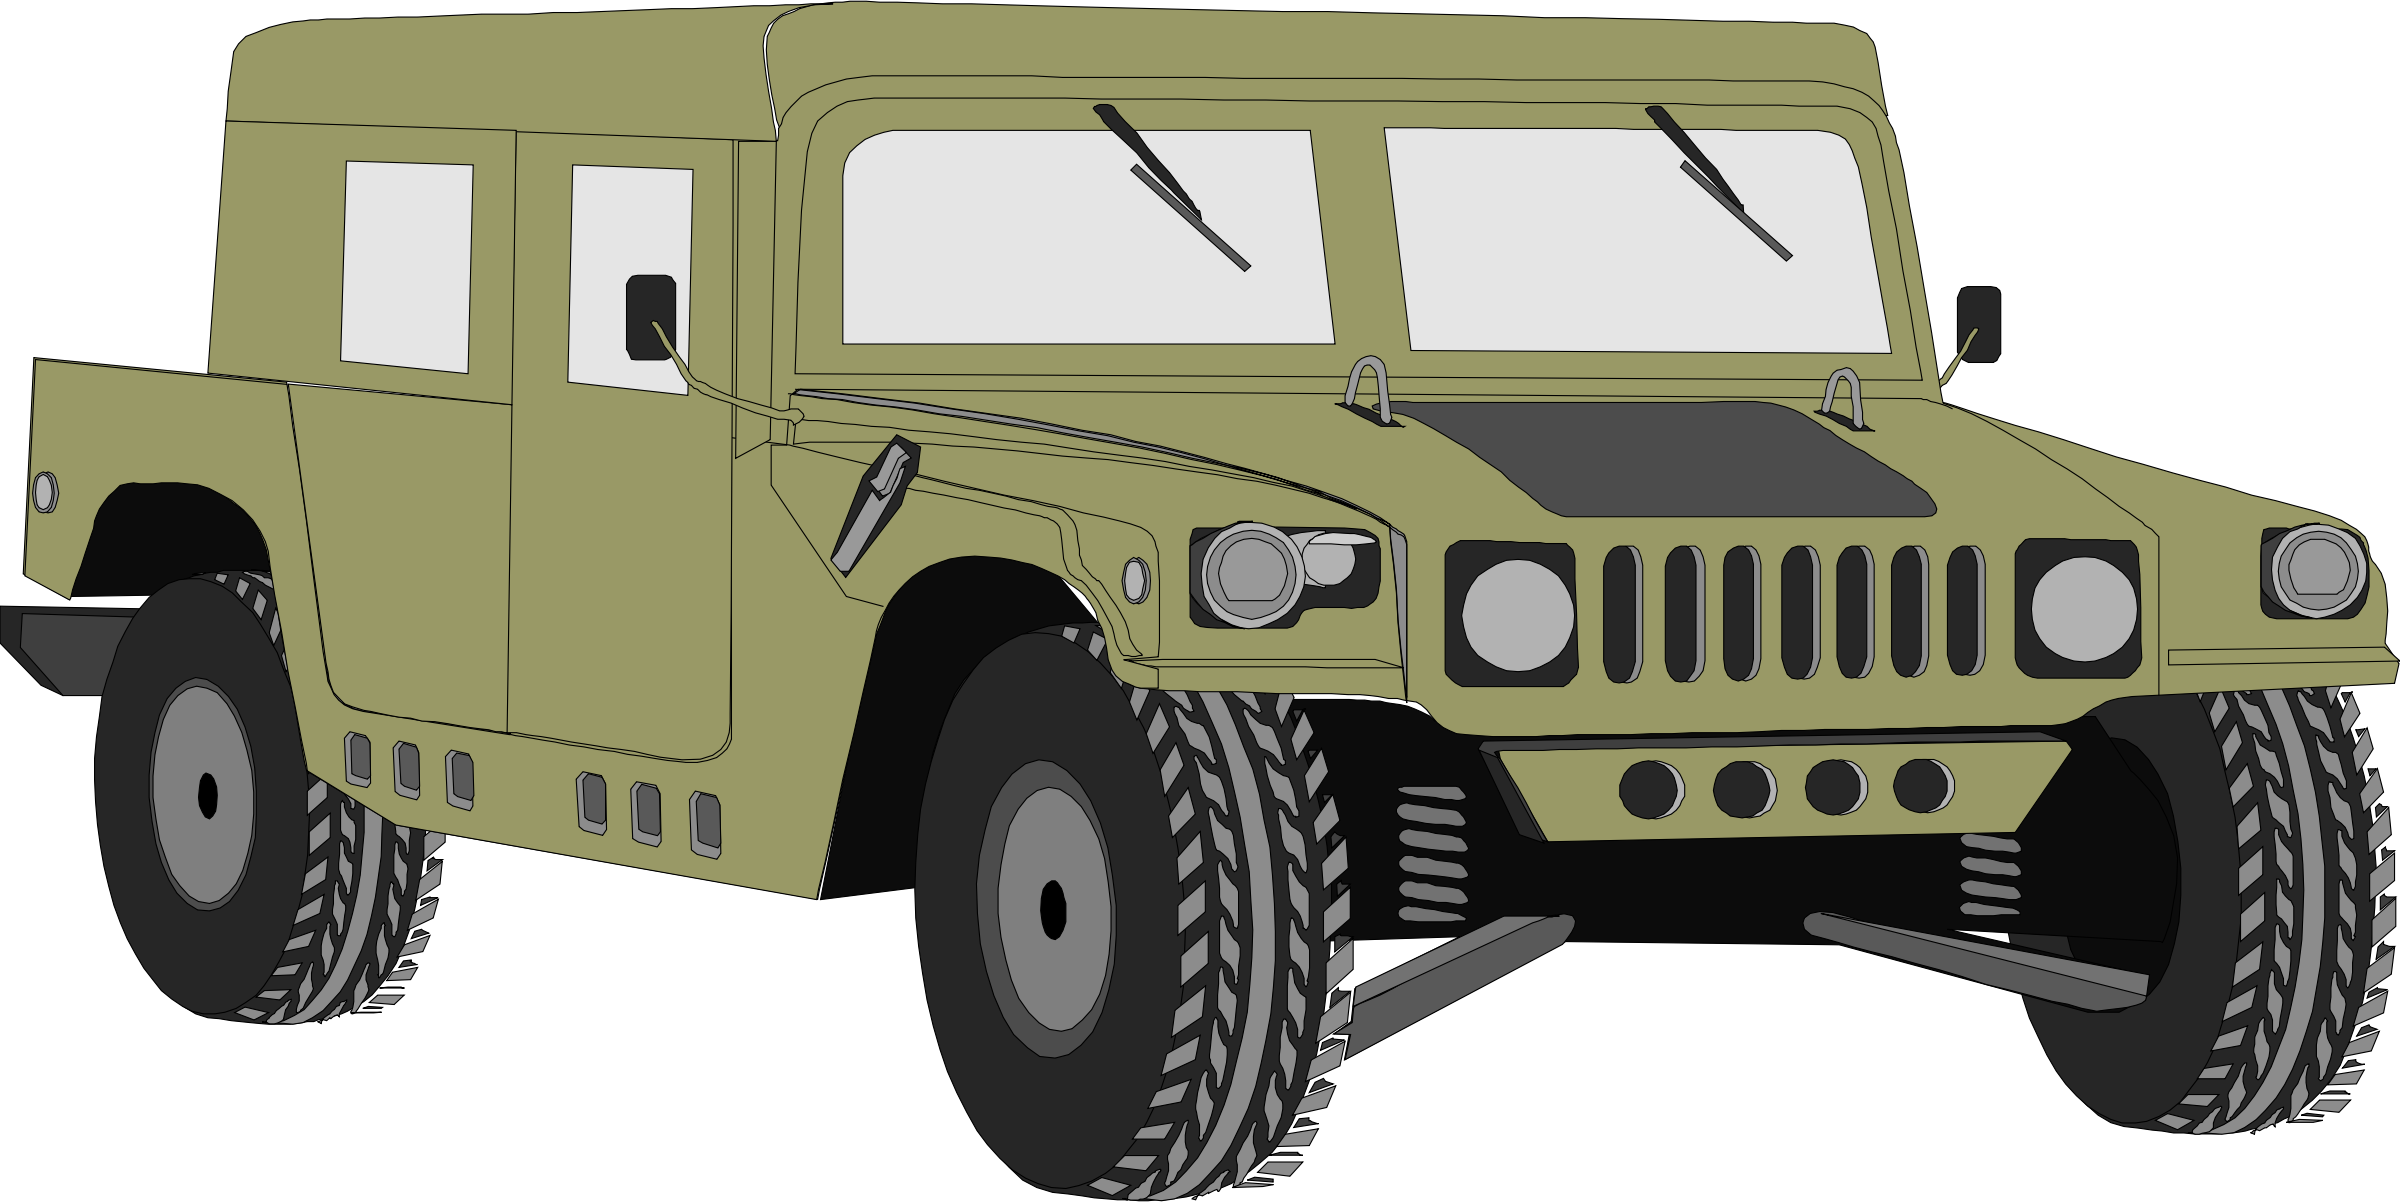 Humvee 03 by Anonymous